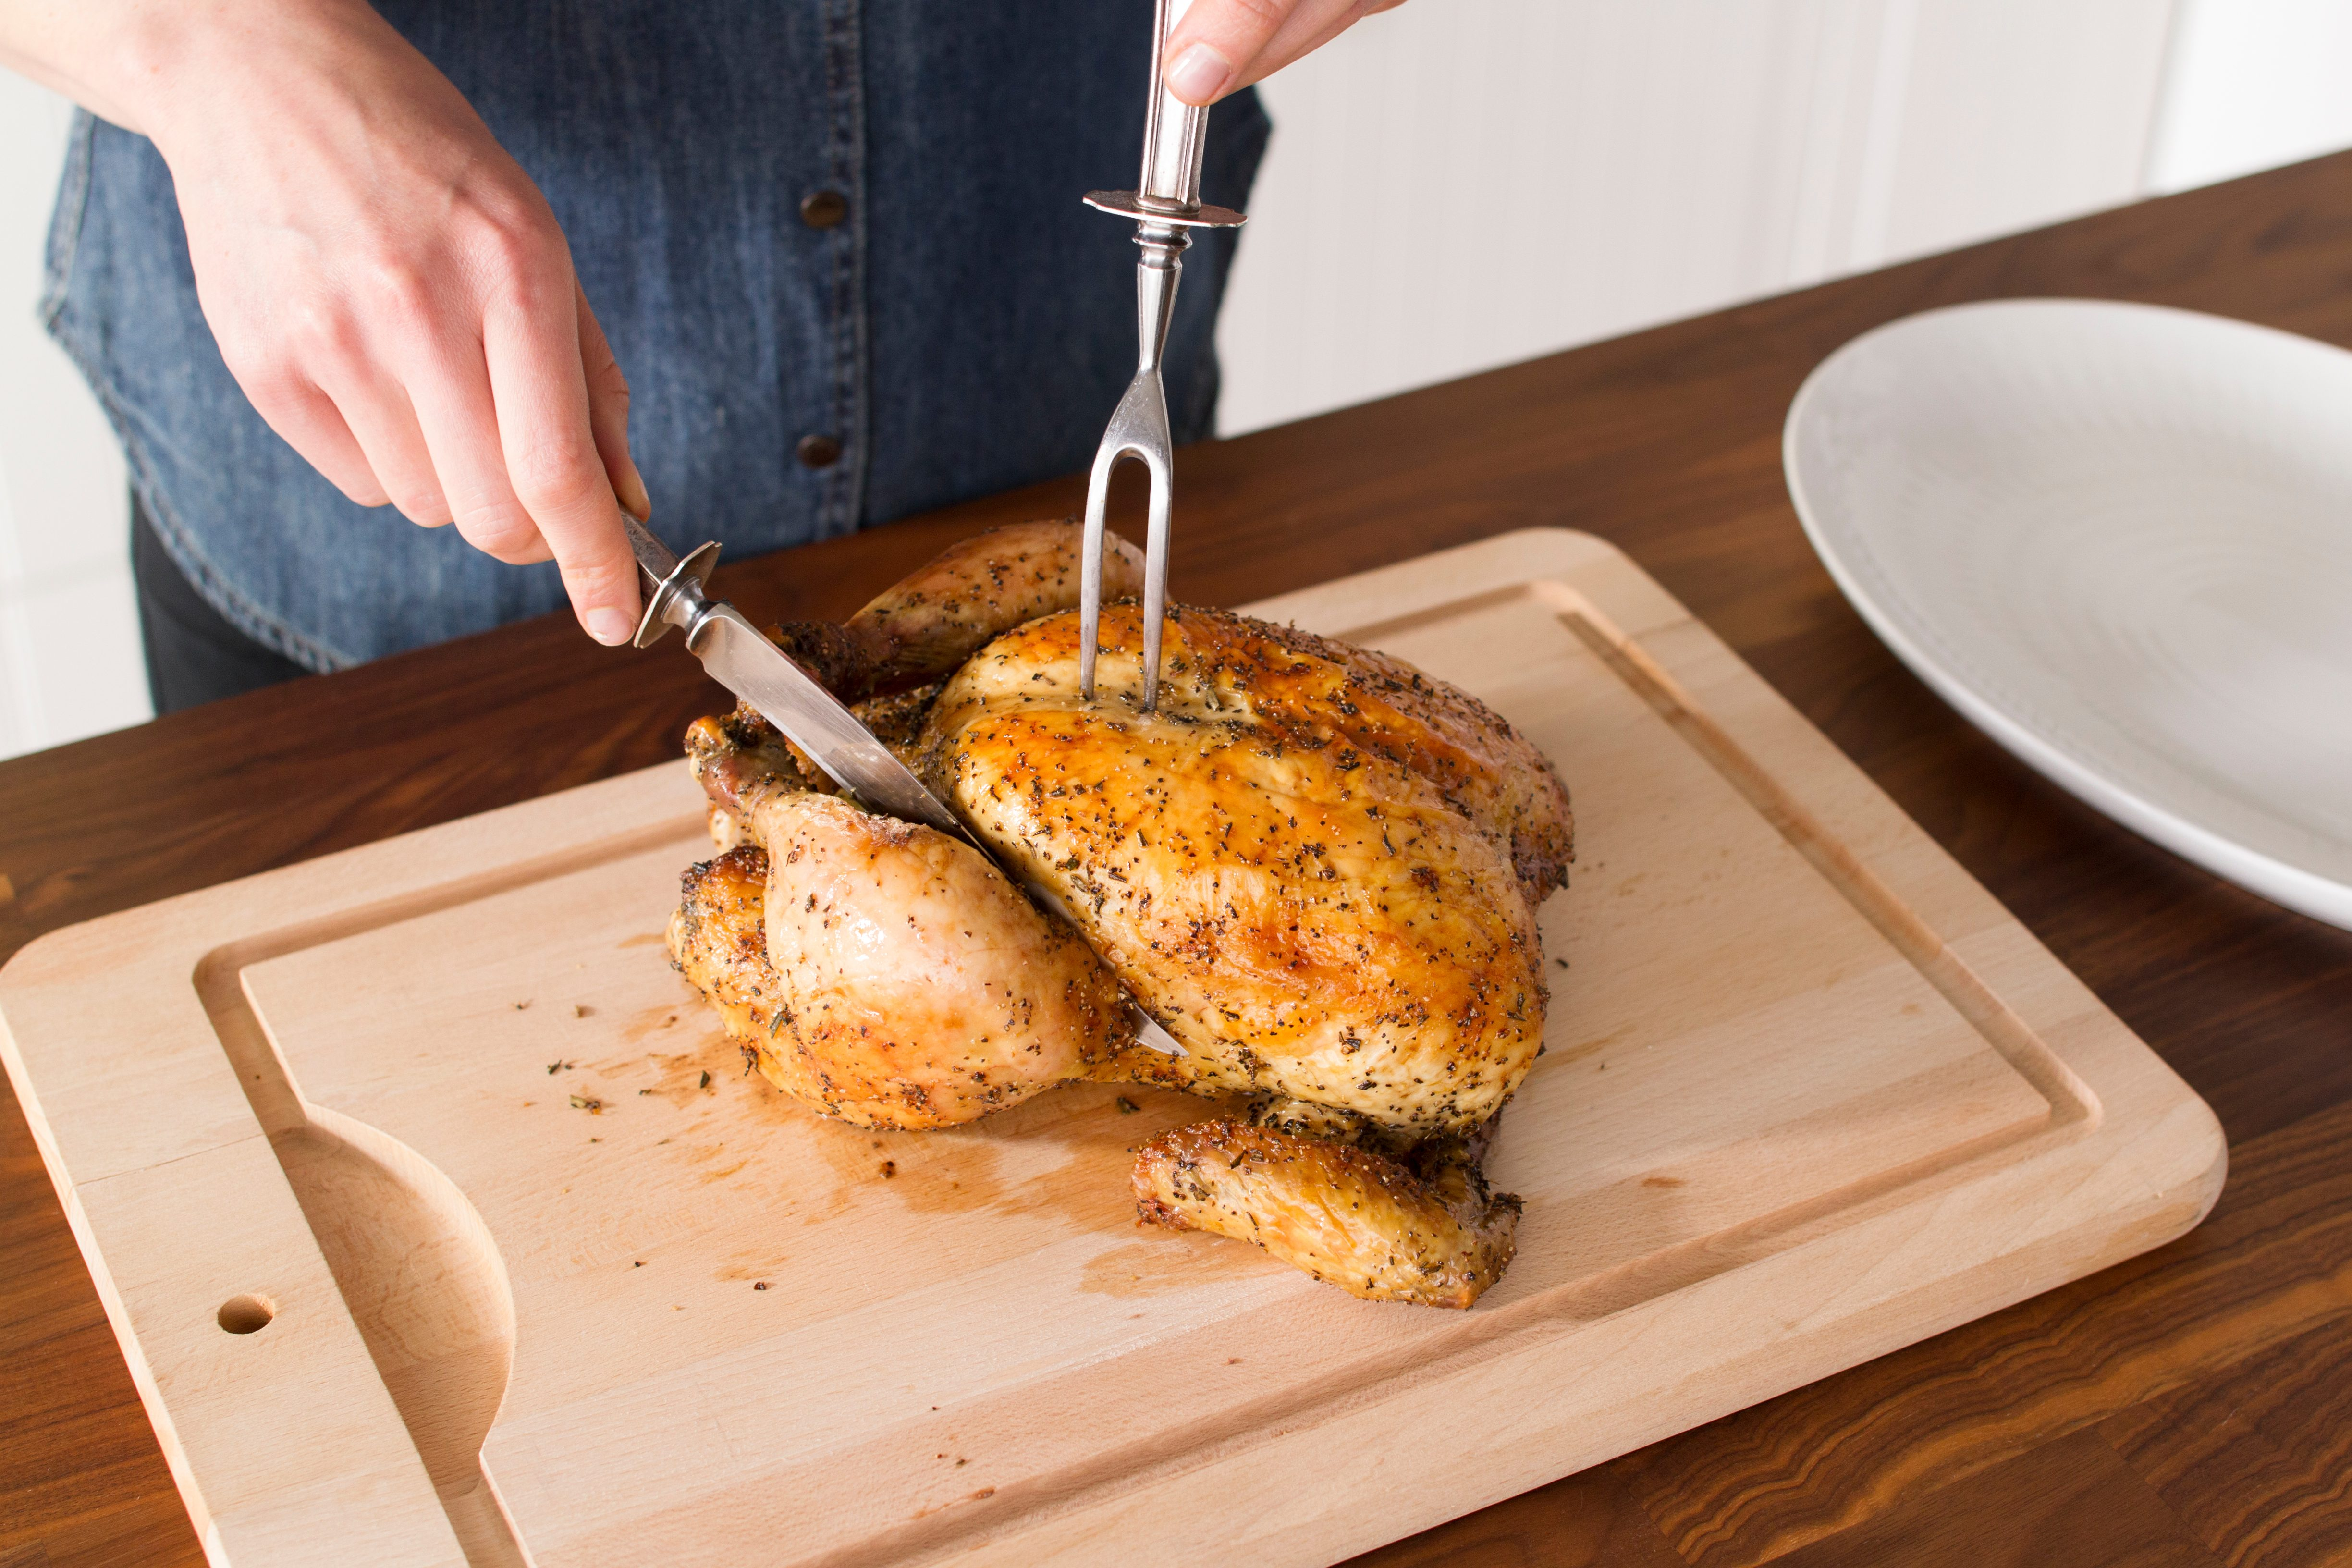 Person holding a whole cooked chicken down with a fork as they slice into one leg with a knife